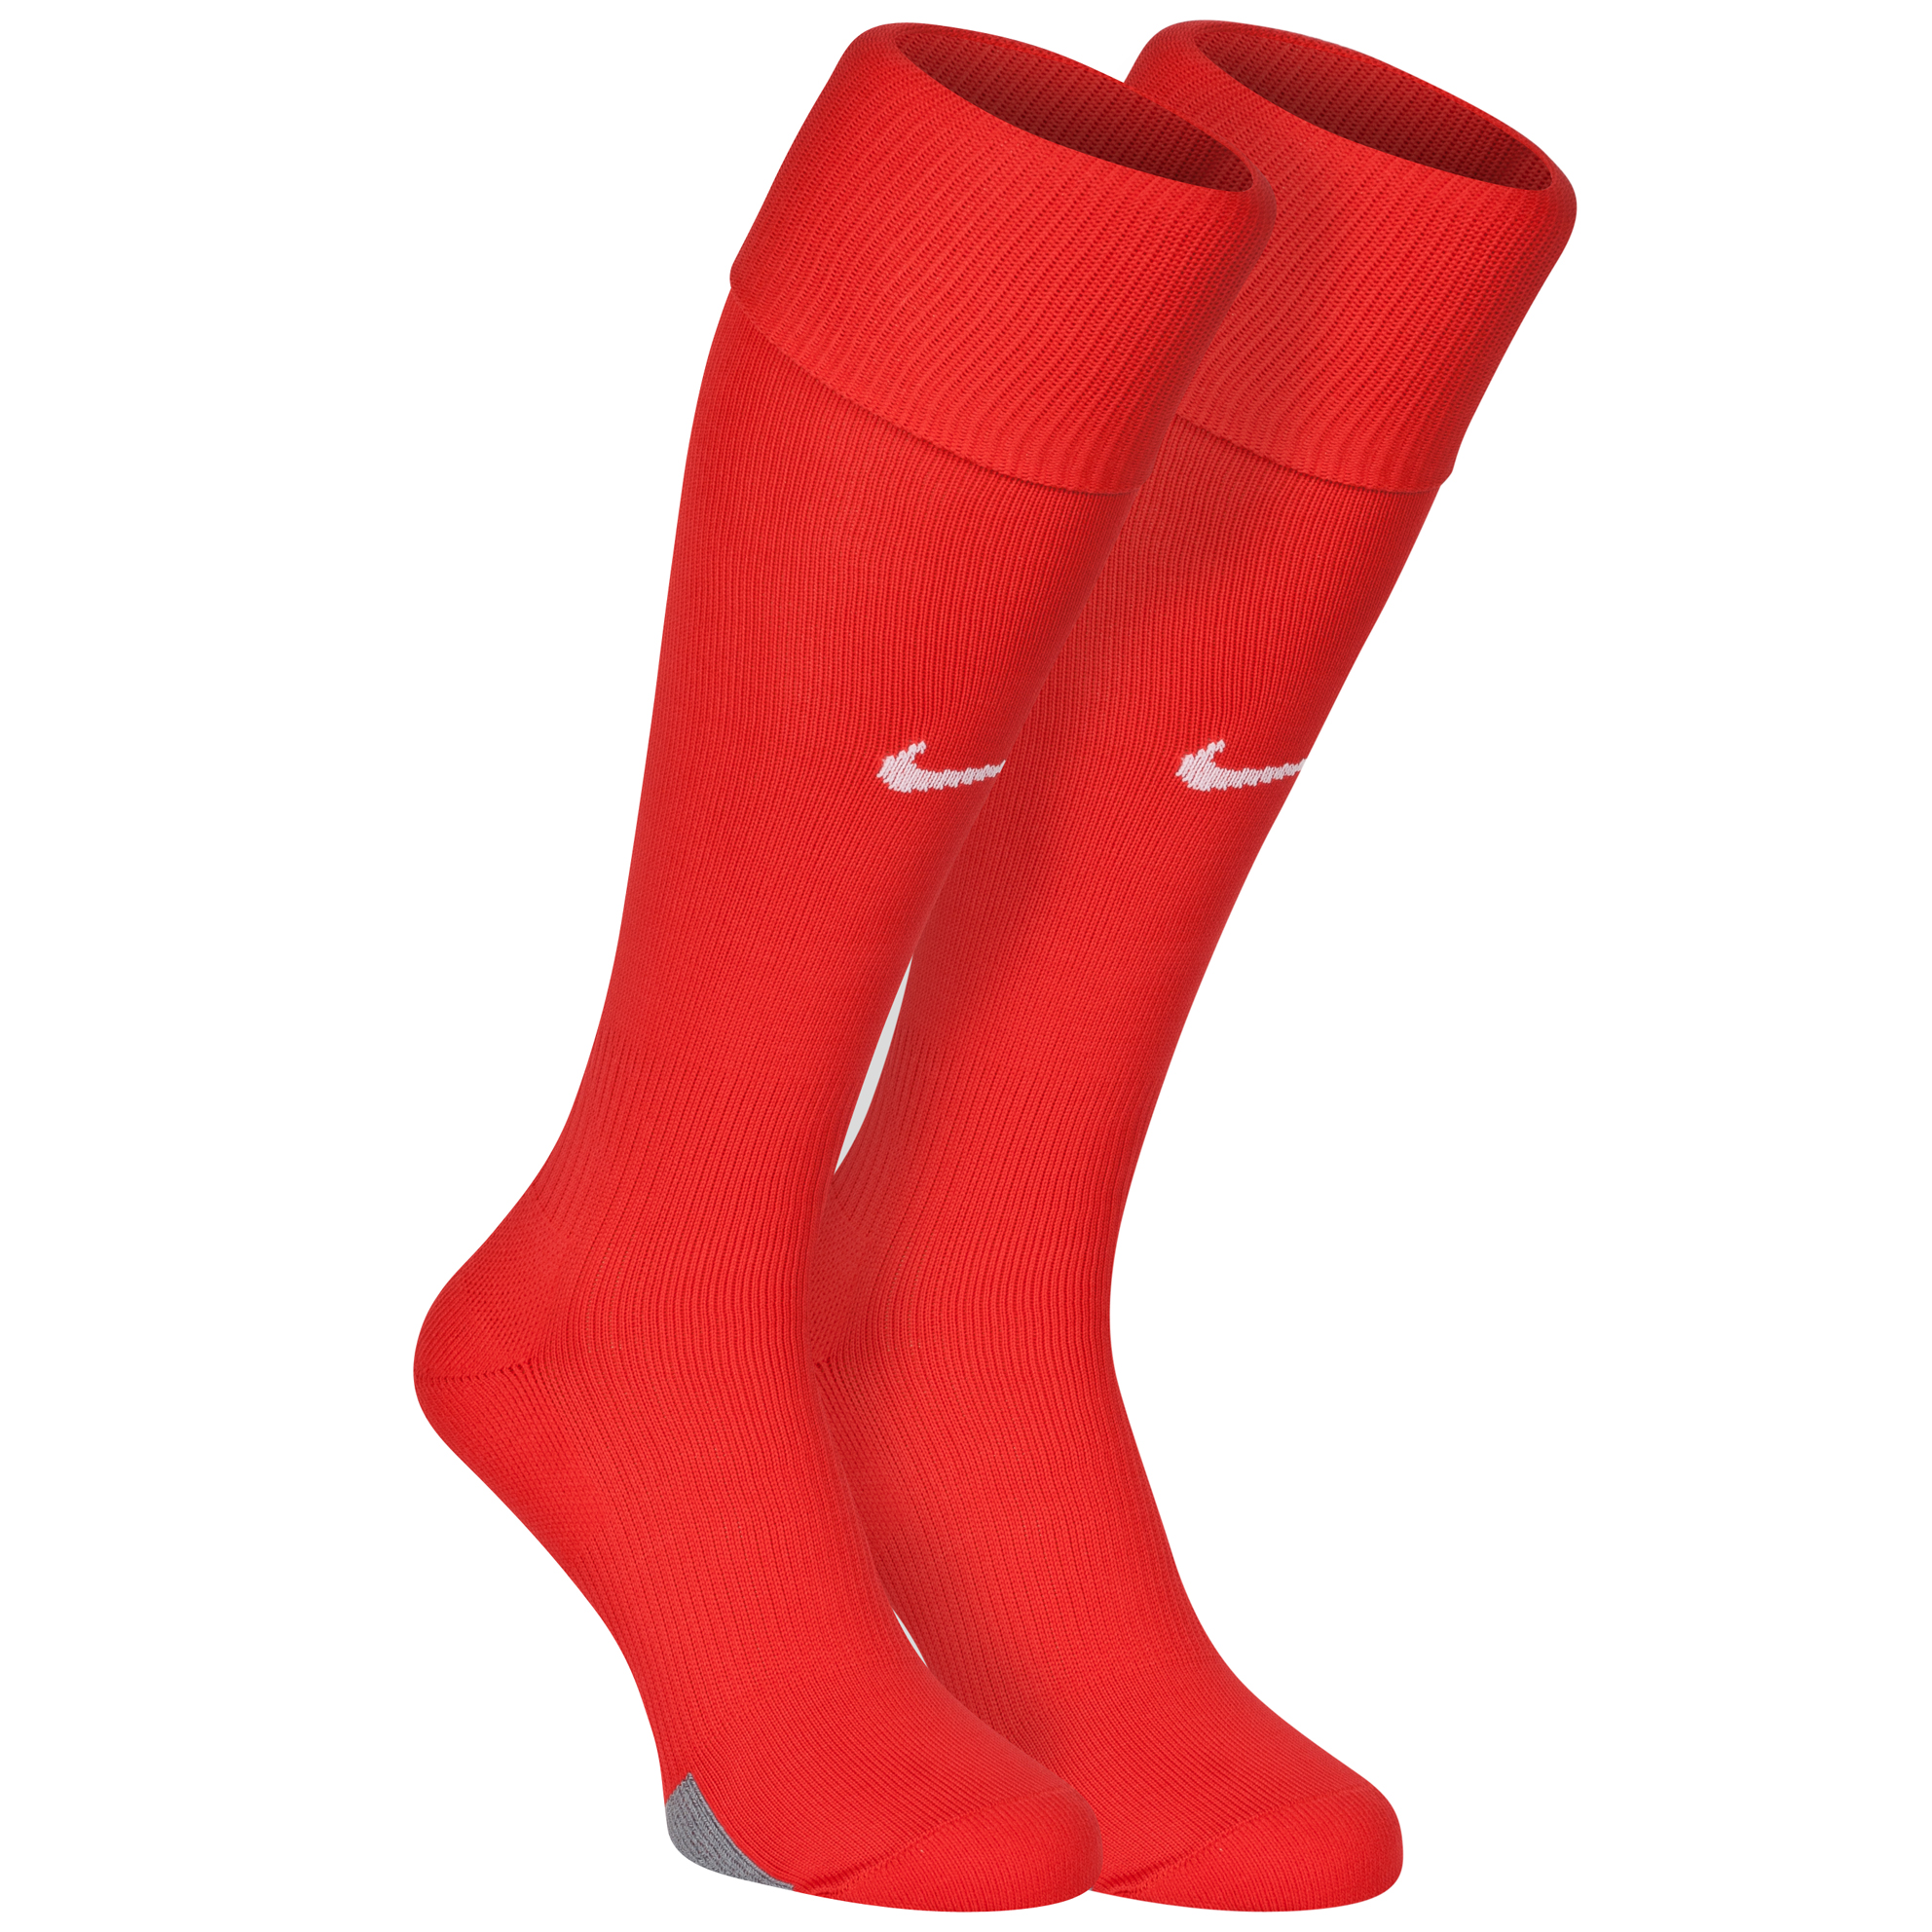 Nike Park IV Training Sock - University Red/White Red